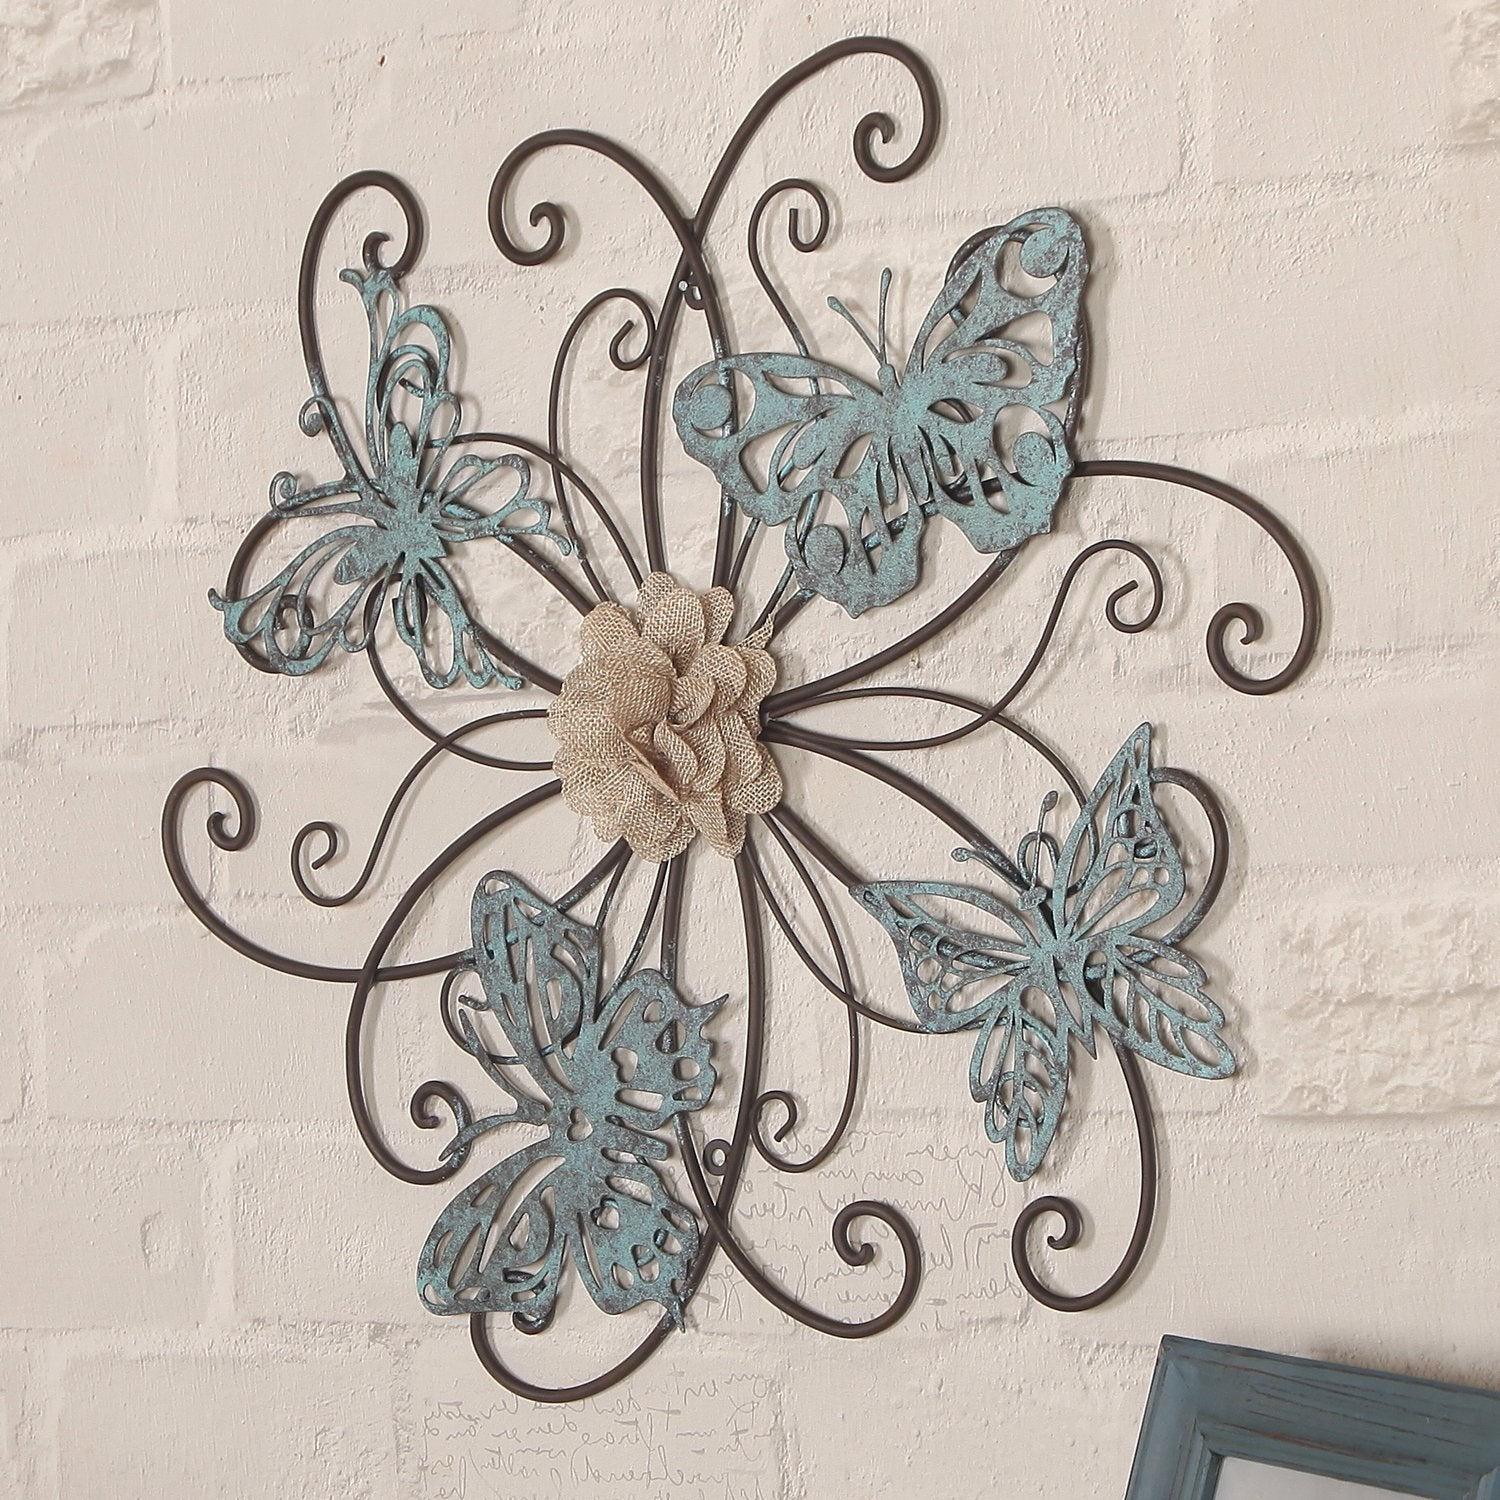 Adeco Flower And Butterfly Urban Design Metal Wall Decor For Nature Home Art For Flower Urban Design Metal Wall Decor (View 10 of 30)